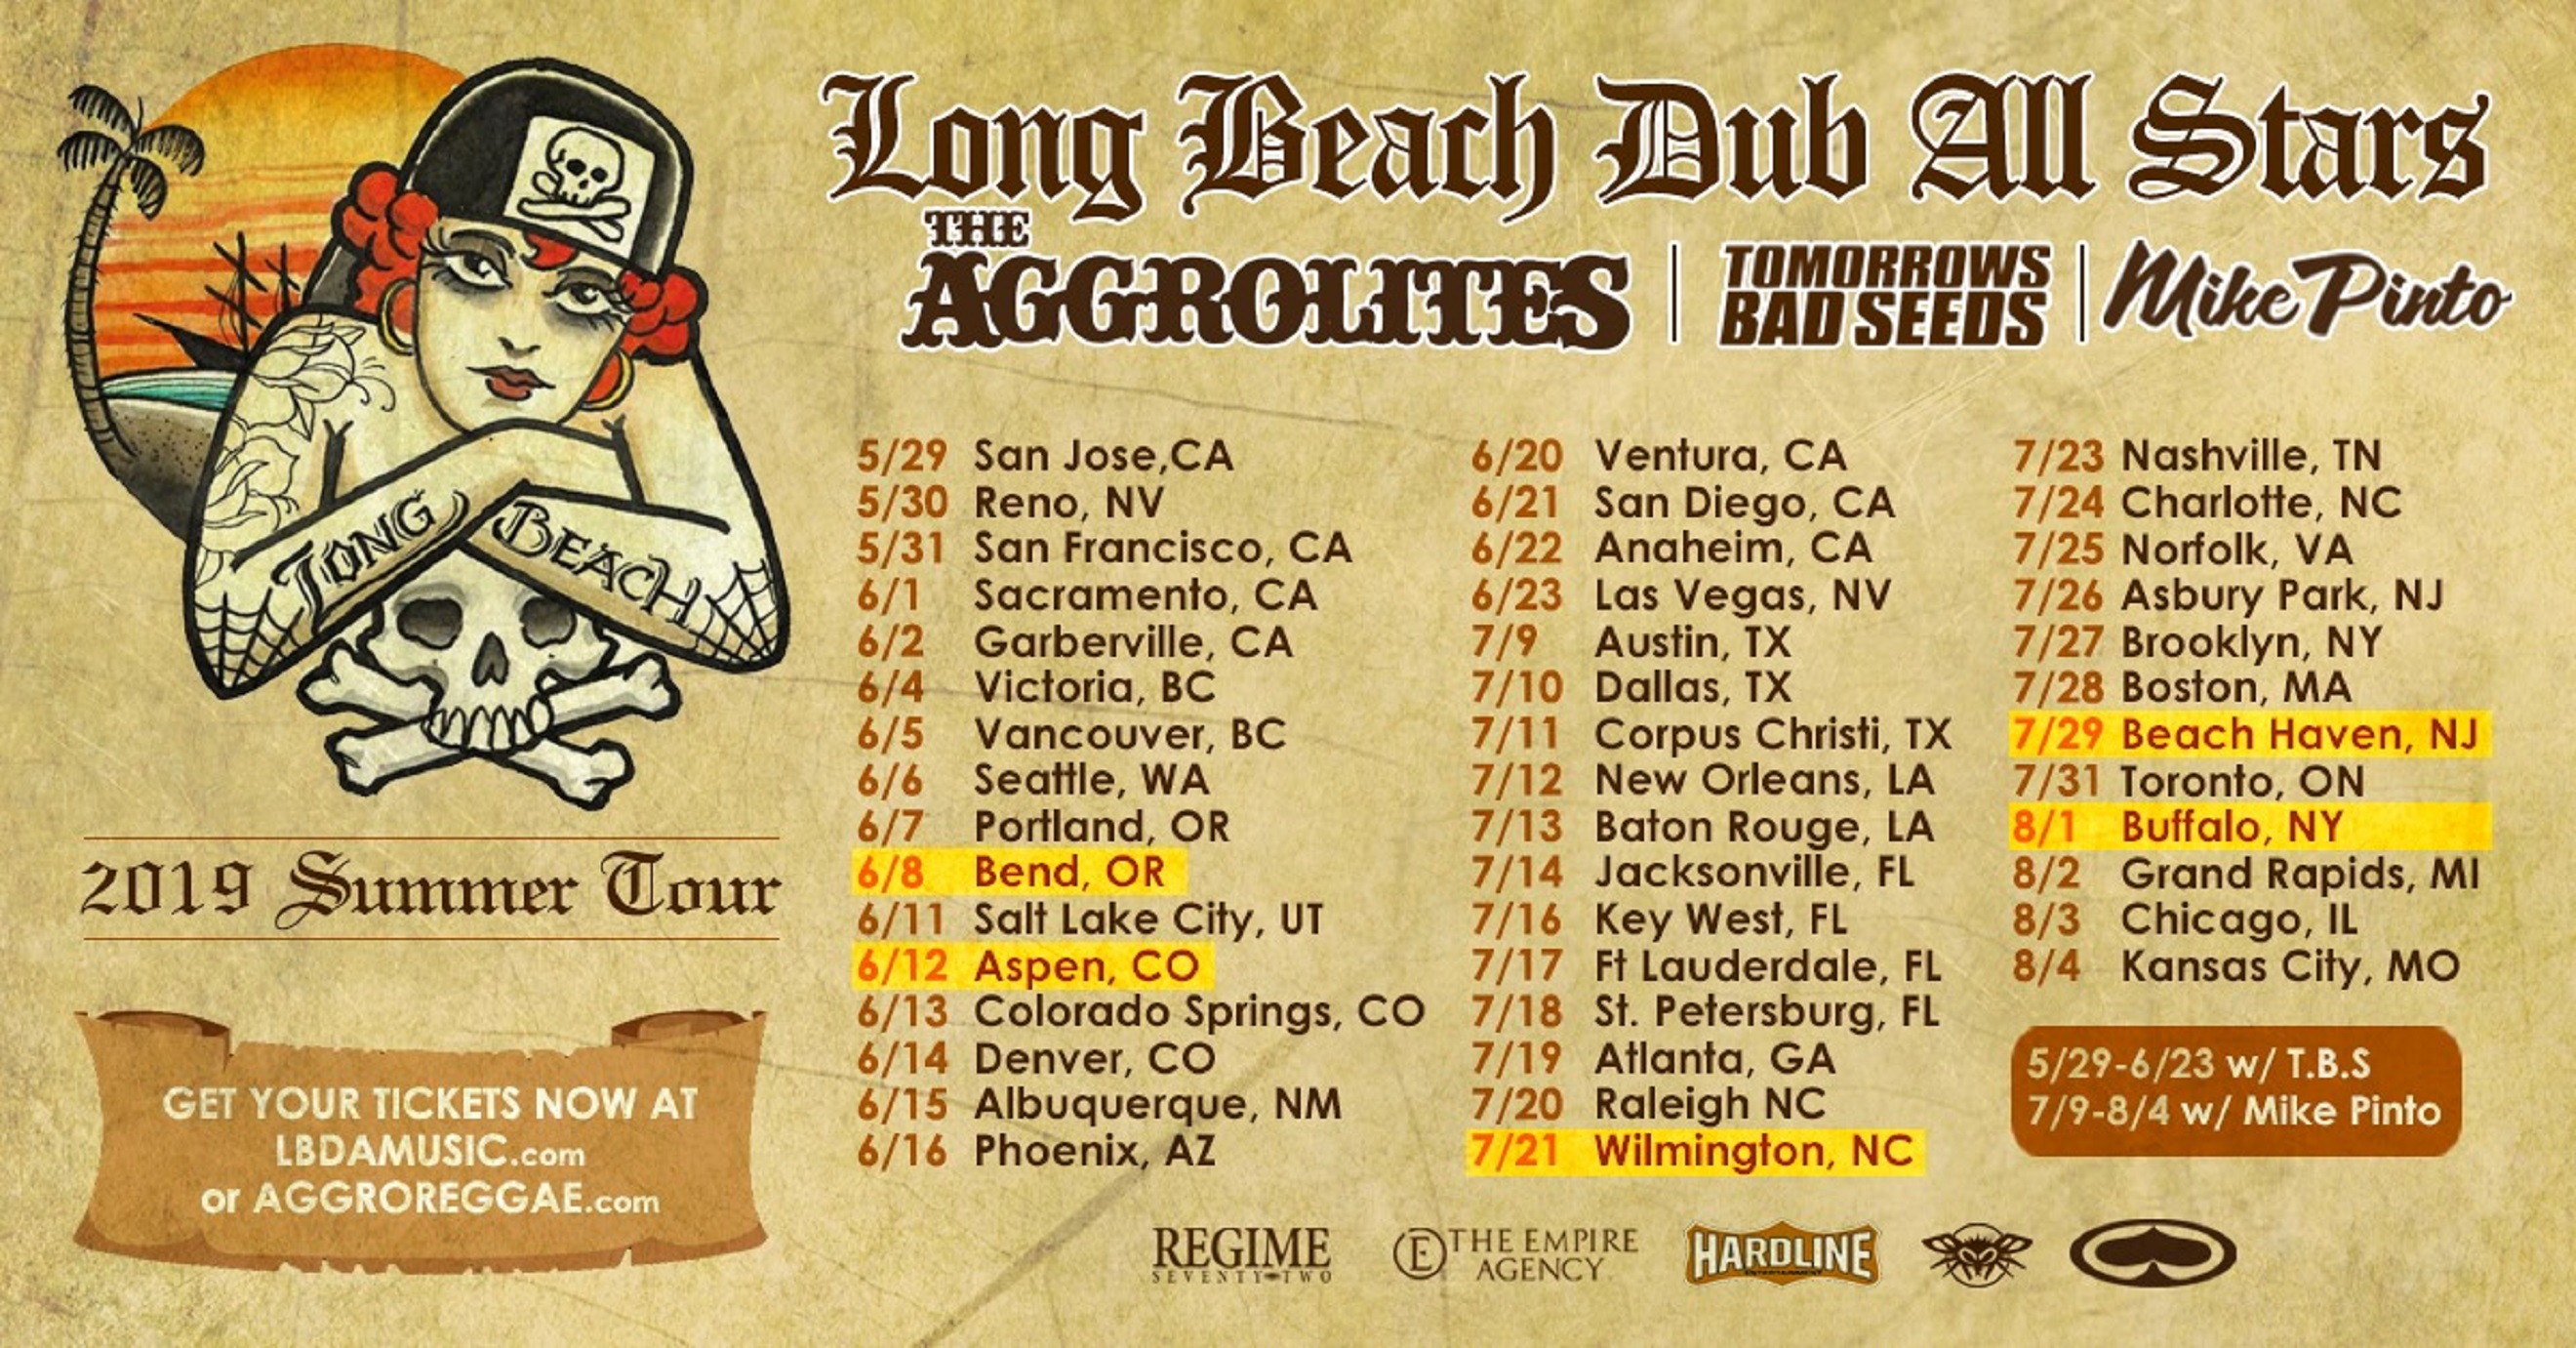 Long Beach Dub Allstars Embark on Tour!